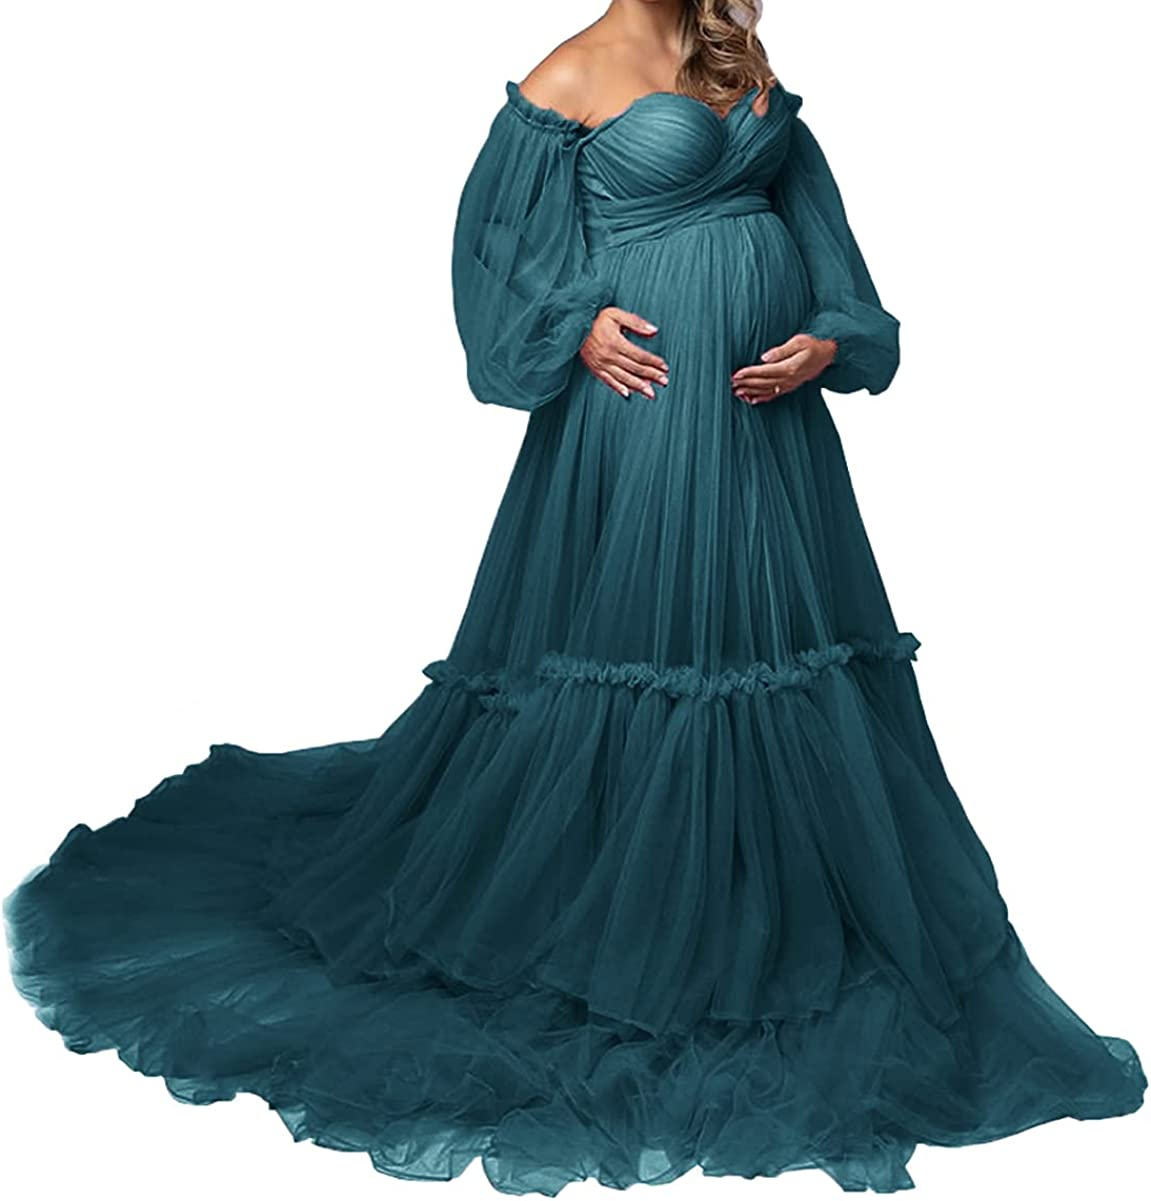 Tianzhihe Off Shoulder Sheer Maternity Tulle Robe for Photoshoot Bridal Dressing Gown Wedding Scraf Puffy Sleeve